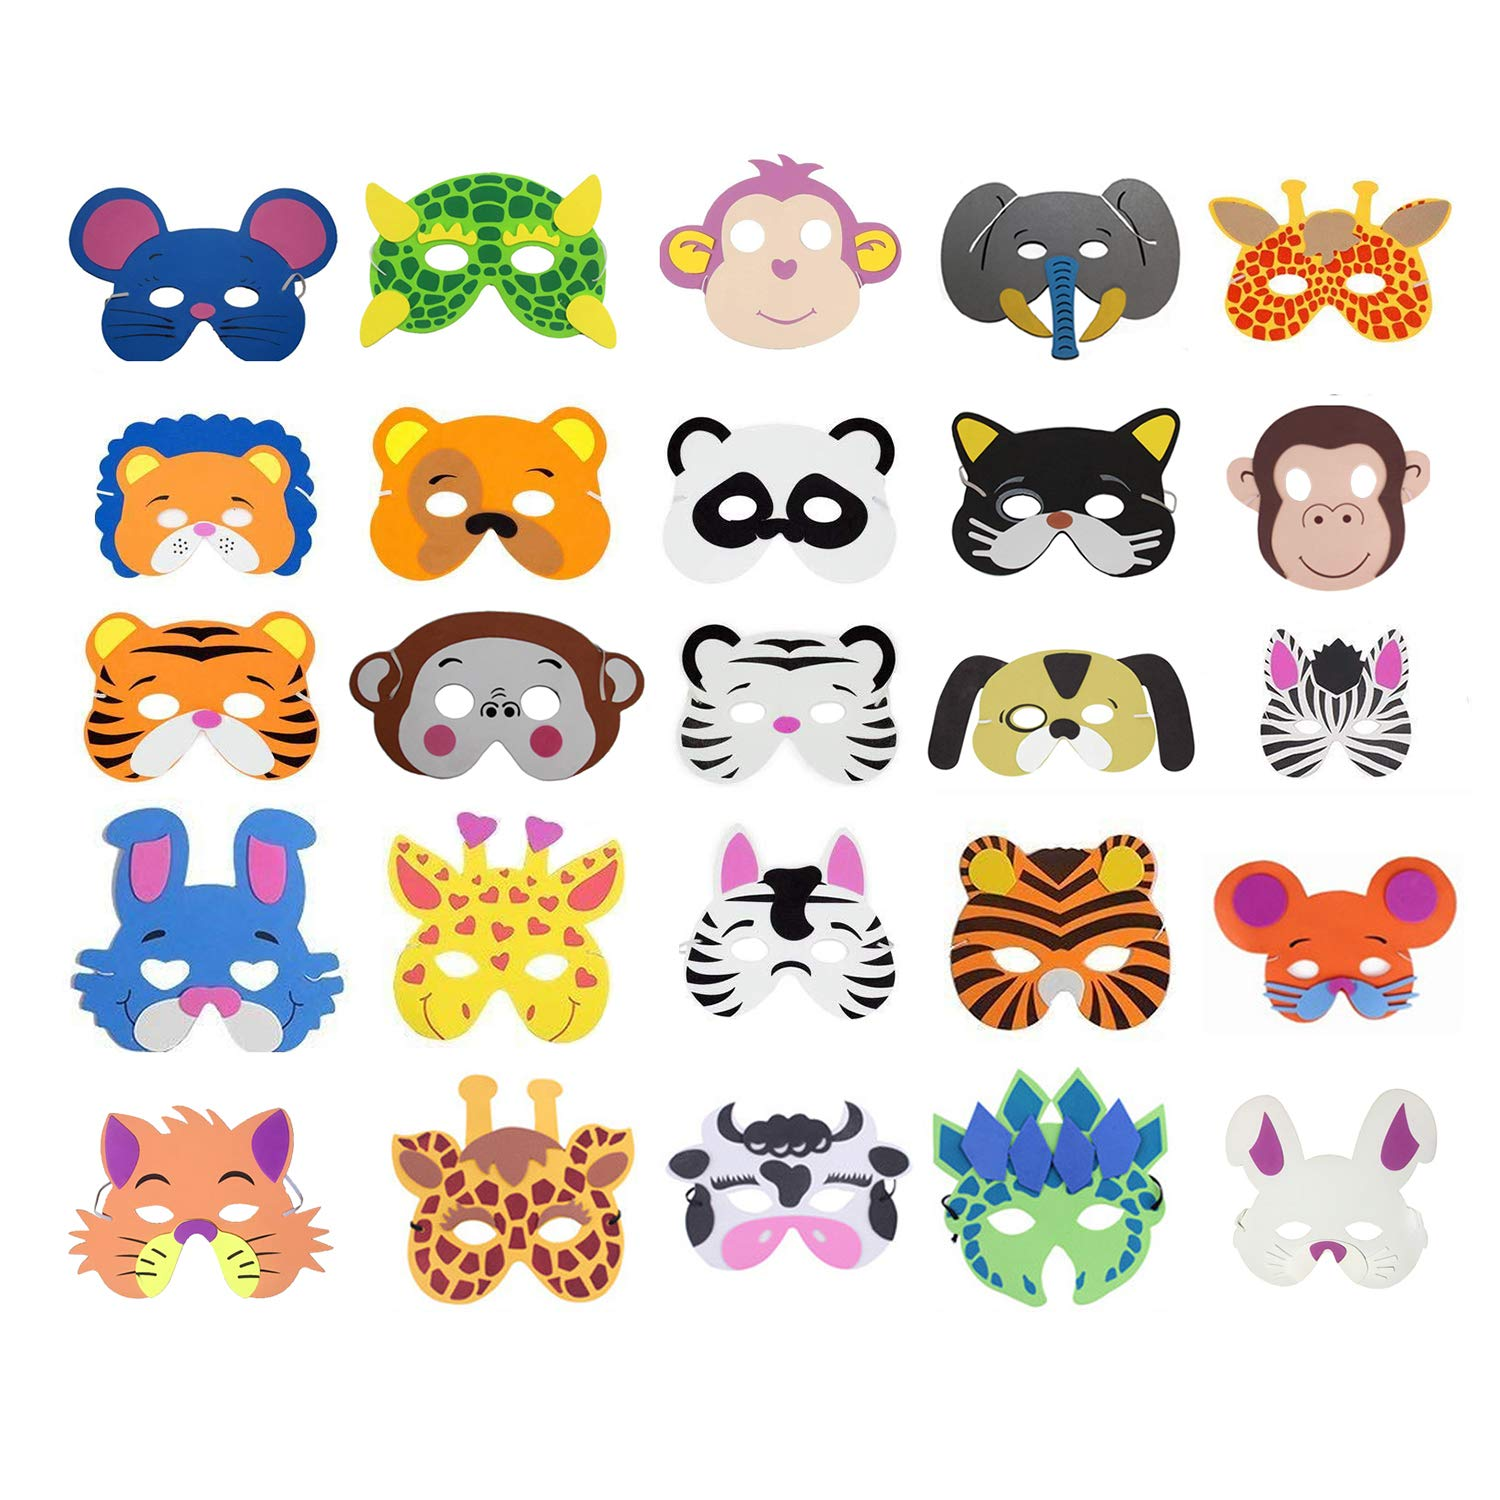 COSORO 25 Kids Eva Foam Animal Masks for Party Bag Fillers, Masquerade, Birthday Party, Christmas, Halloween